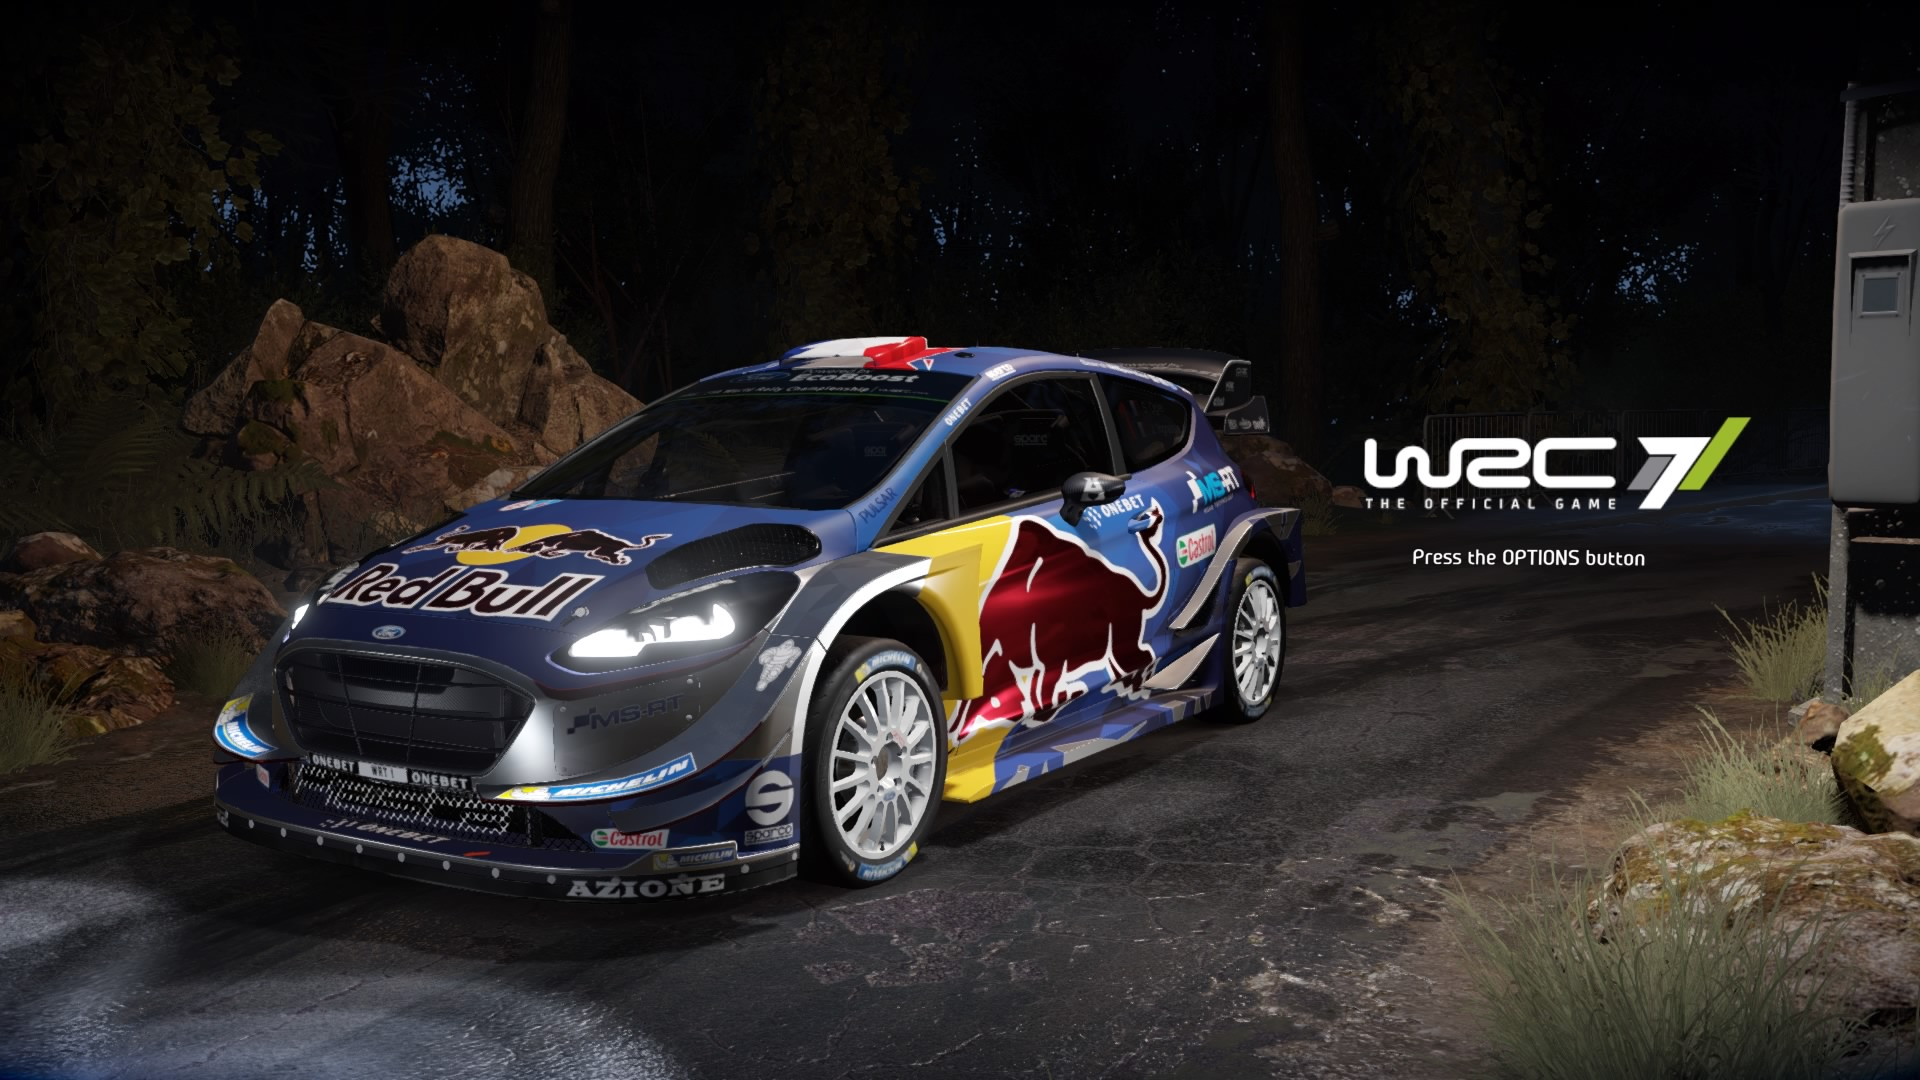 2018 Wrc Cars >> WRC 7 Review - On the Right Track - Terminal Gamer - Gaming is our Passion | PS3, PS4, Xbox 360 ...